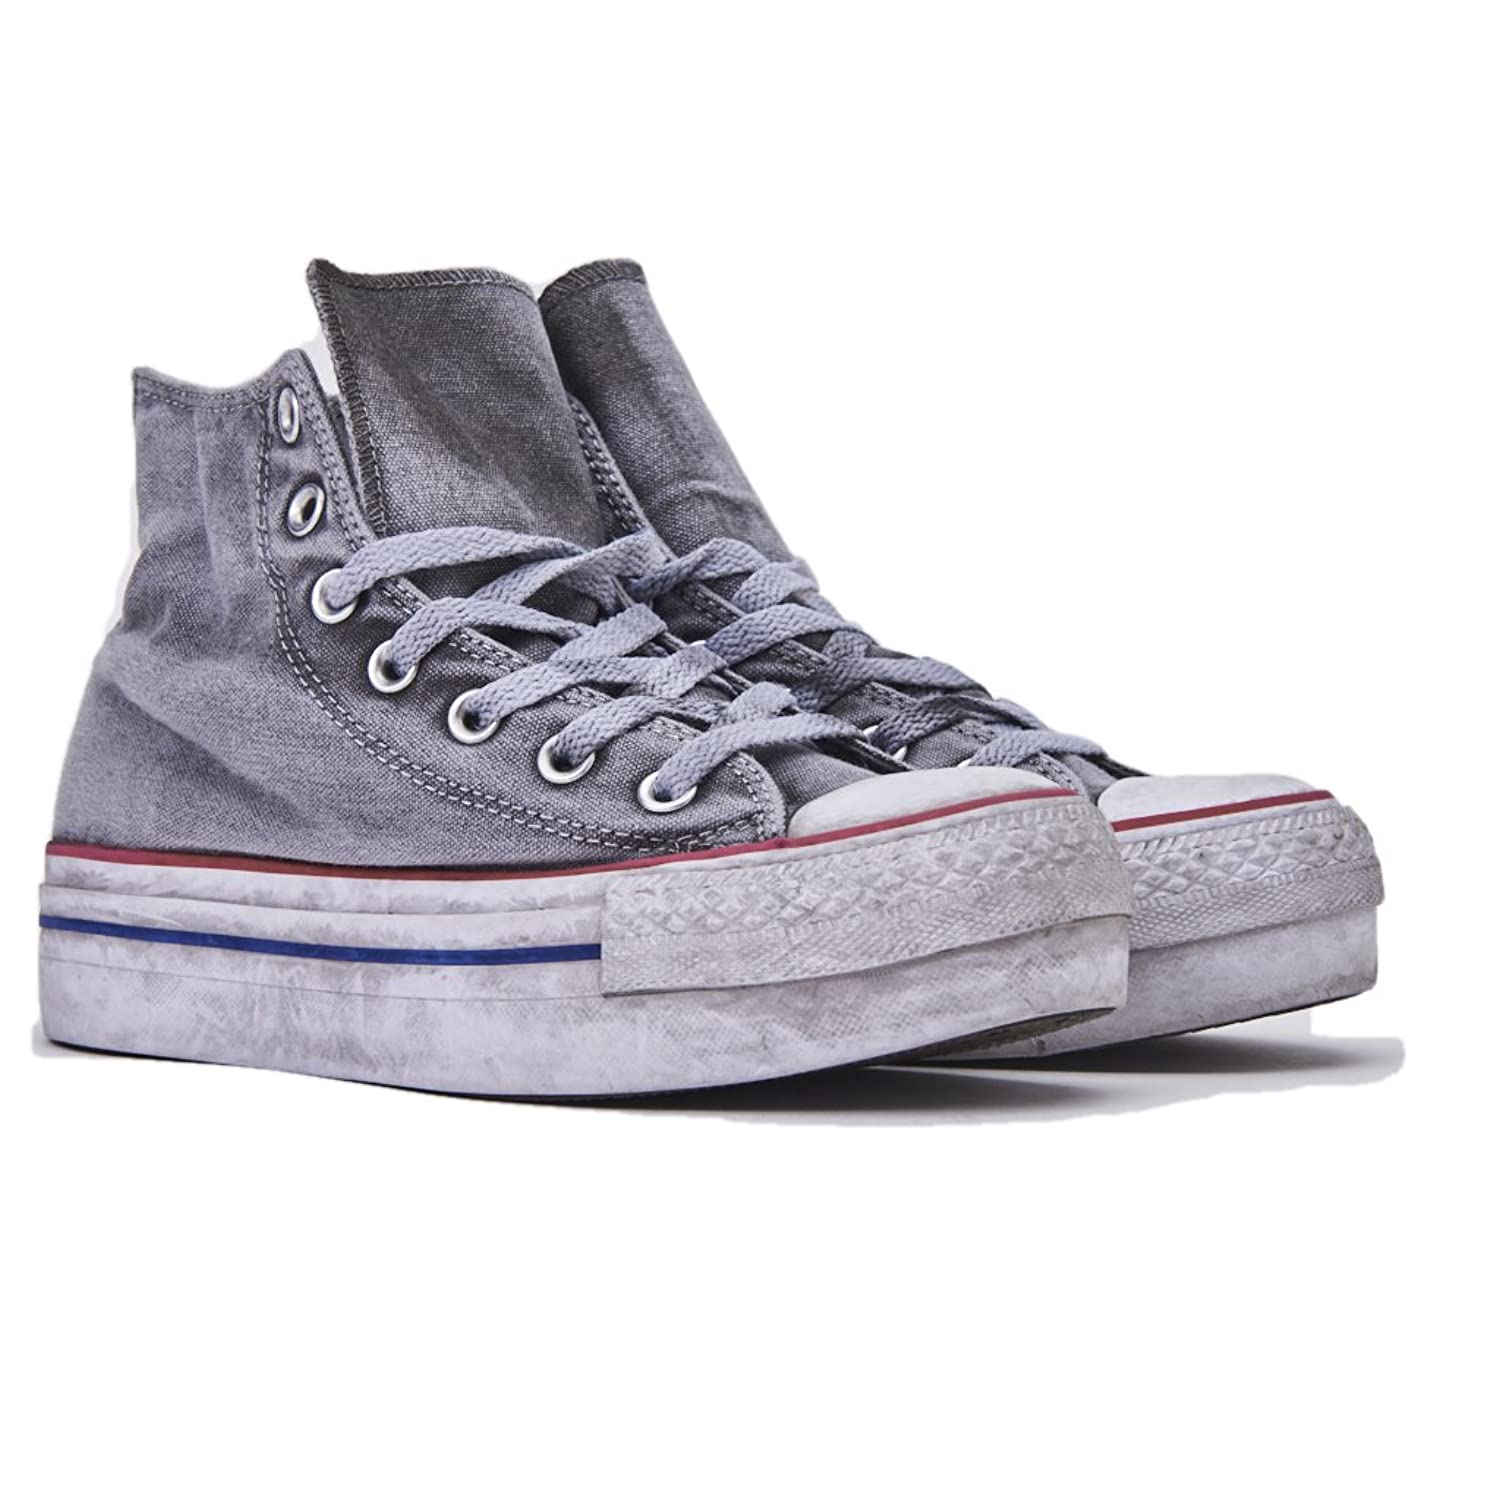 Converse Limited Edition All Star Platform Smoke Sneakers Donna Chuck  Taylor Ltd 558453C/WHITE Smoke, Nuova Collezione Primavera Estate 2018:  Amazon.co.uk: ...